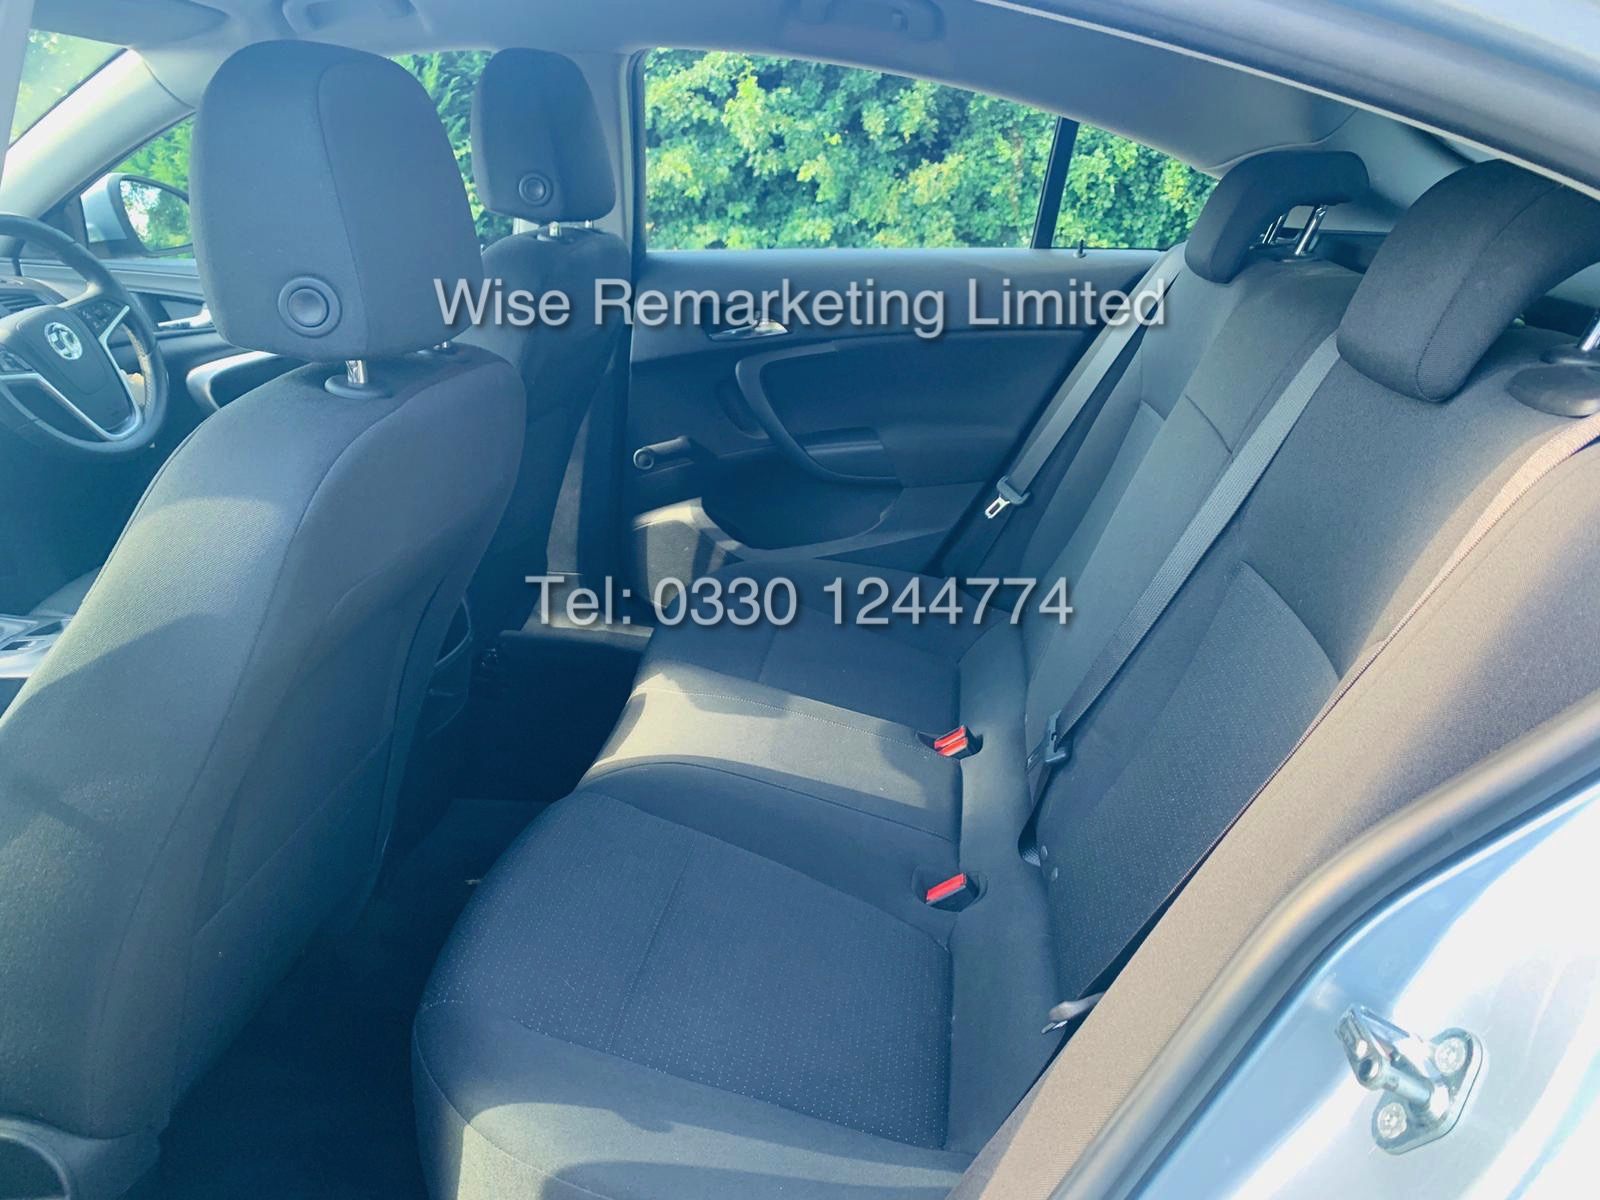 VAUXHALL INSIGNIA 2.0 CDTI ECOFLEX ES 2013 *FSH* 1 OWNER FROM NEW - Image 12 of 30